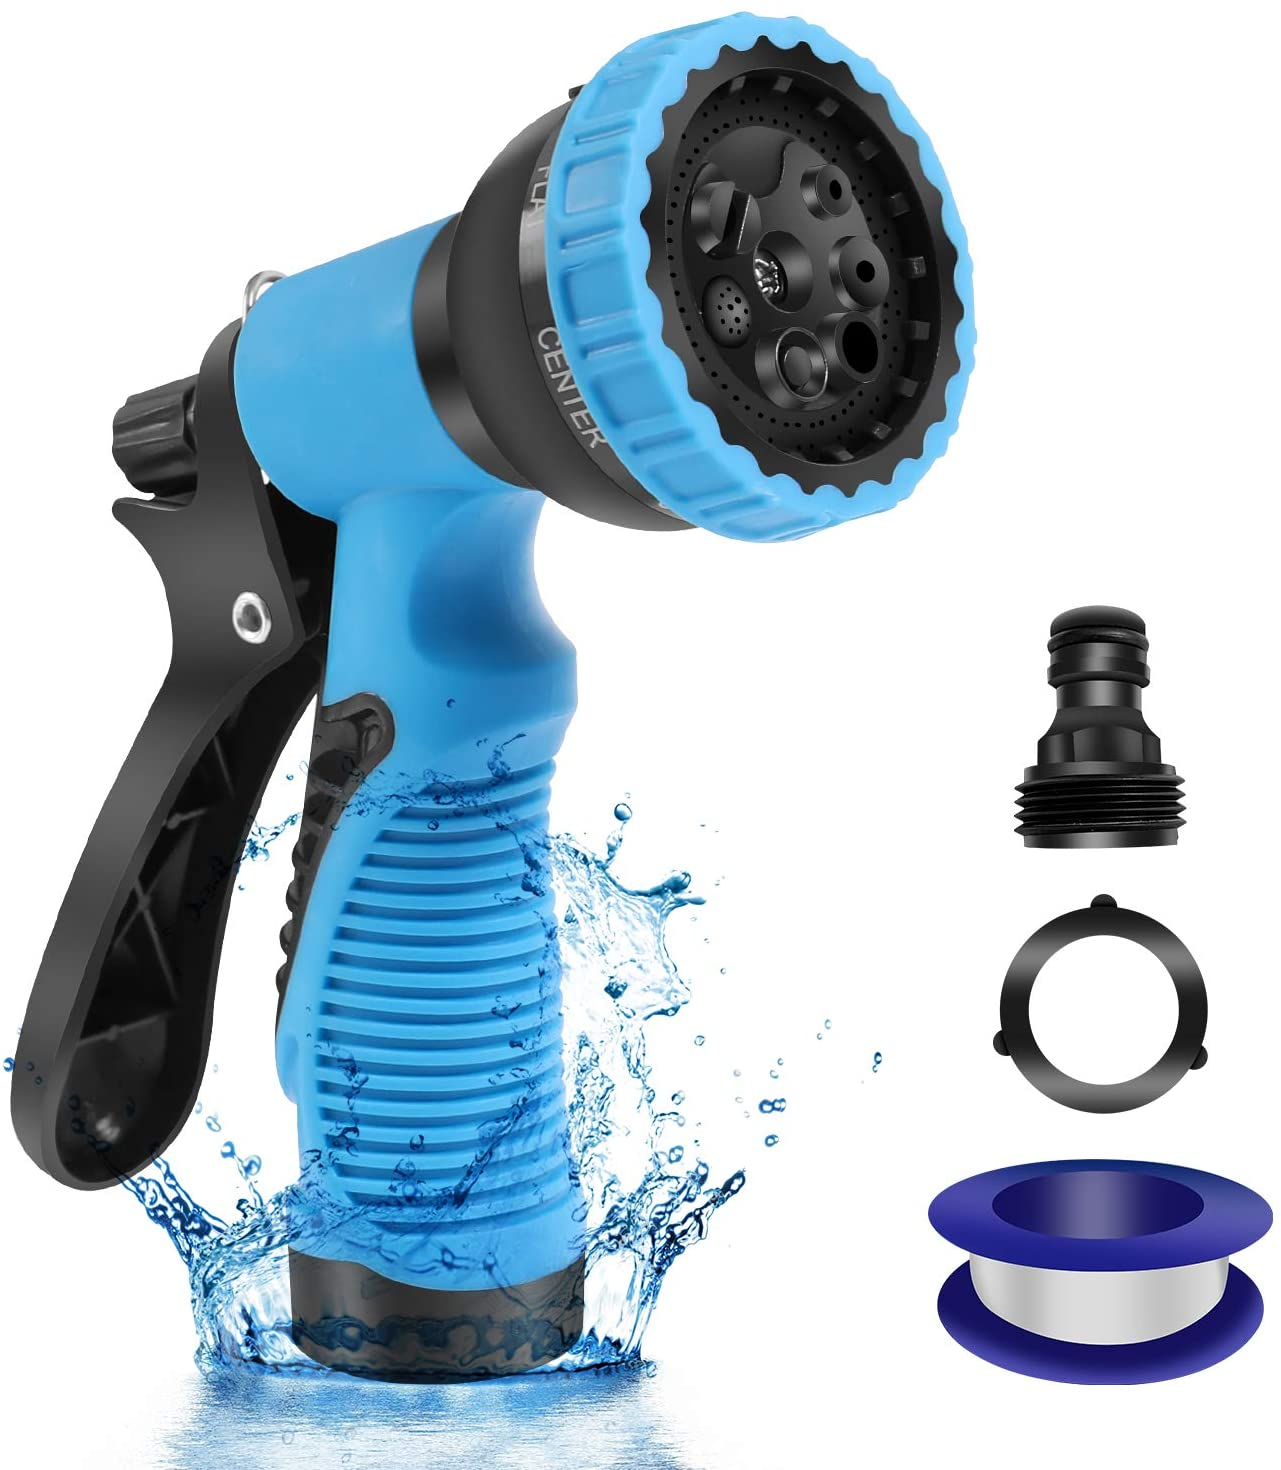 Garden Hose Sprayer Nozzle with 8 Adjustable Pattern, ABS Water Spray Nozzle, Slip Resistant Nozzle Fits All Standard Garden Hoses for Watering Plants, Lawn& Garden, Washing Cars, Showering Pets